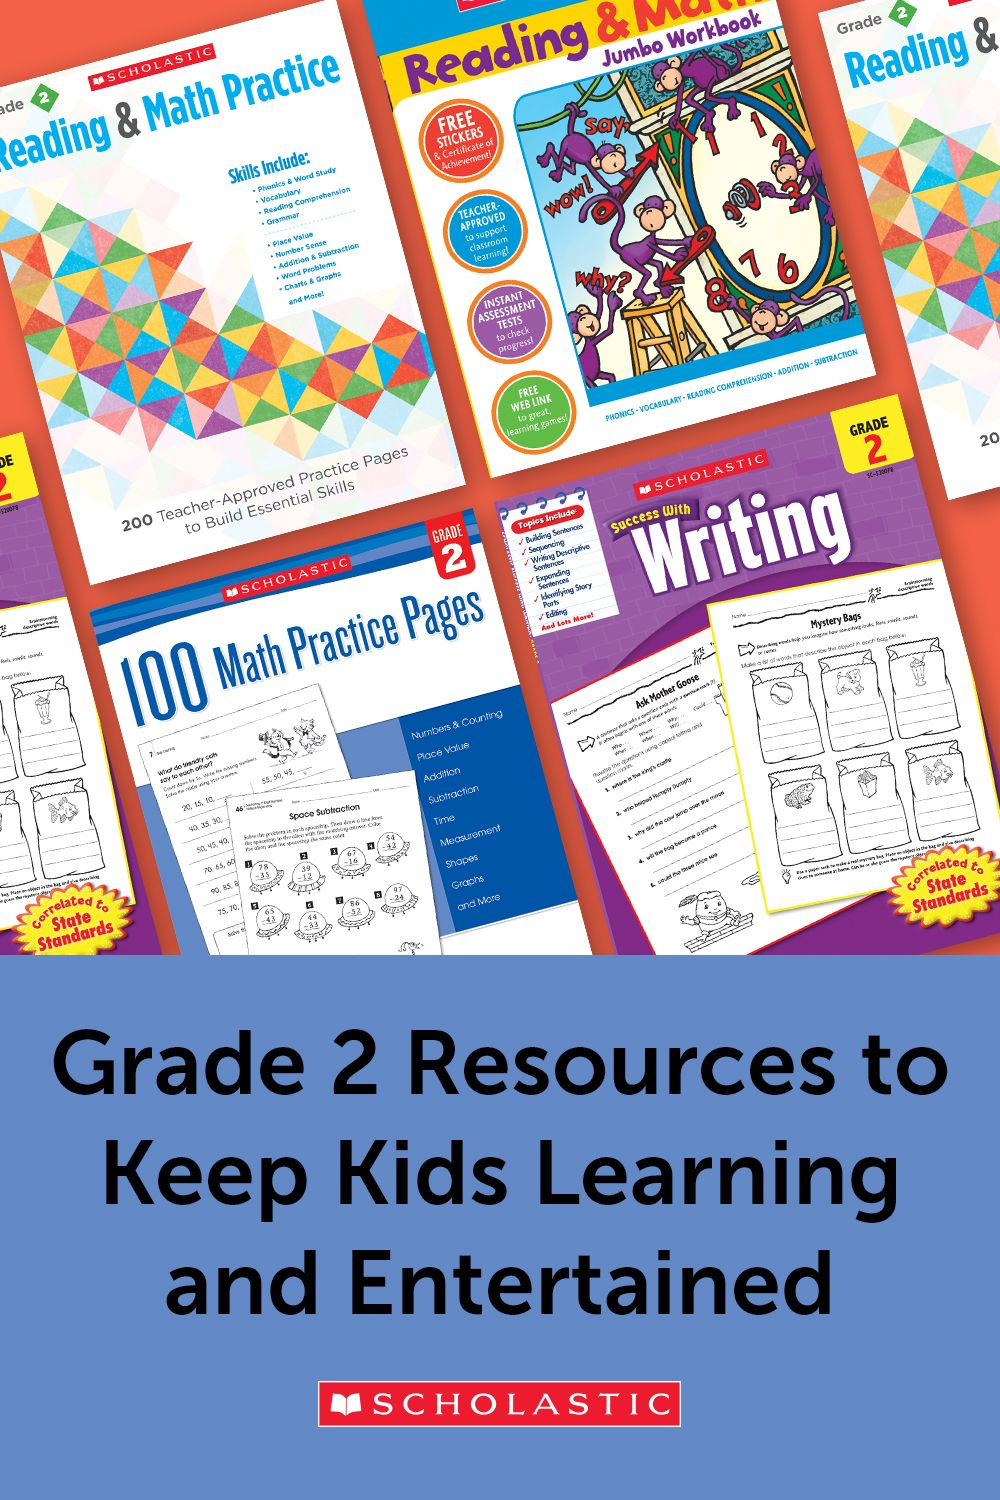 A Collection Of Scholastic Workbooks And Activities To Keep Second